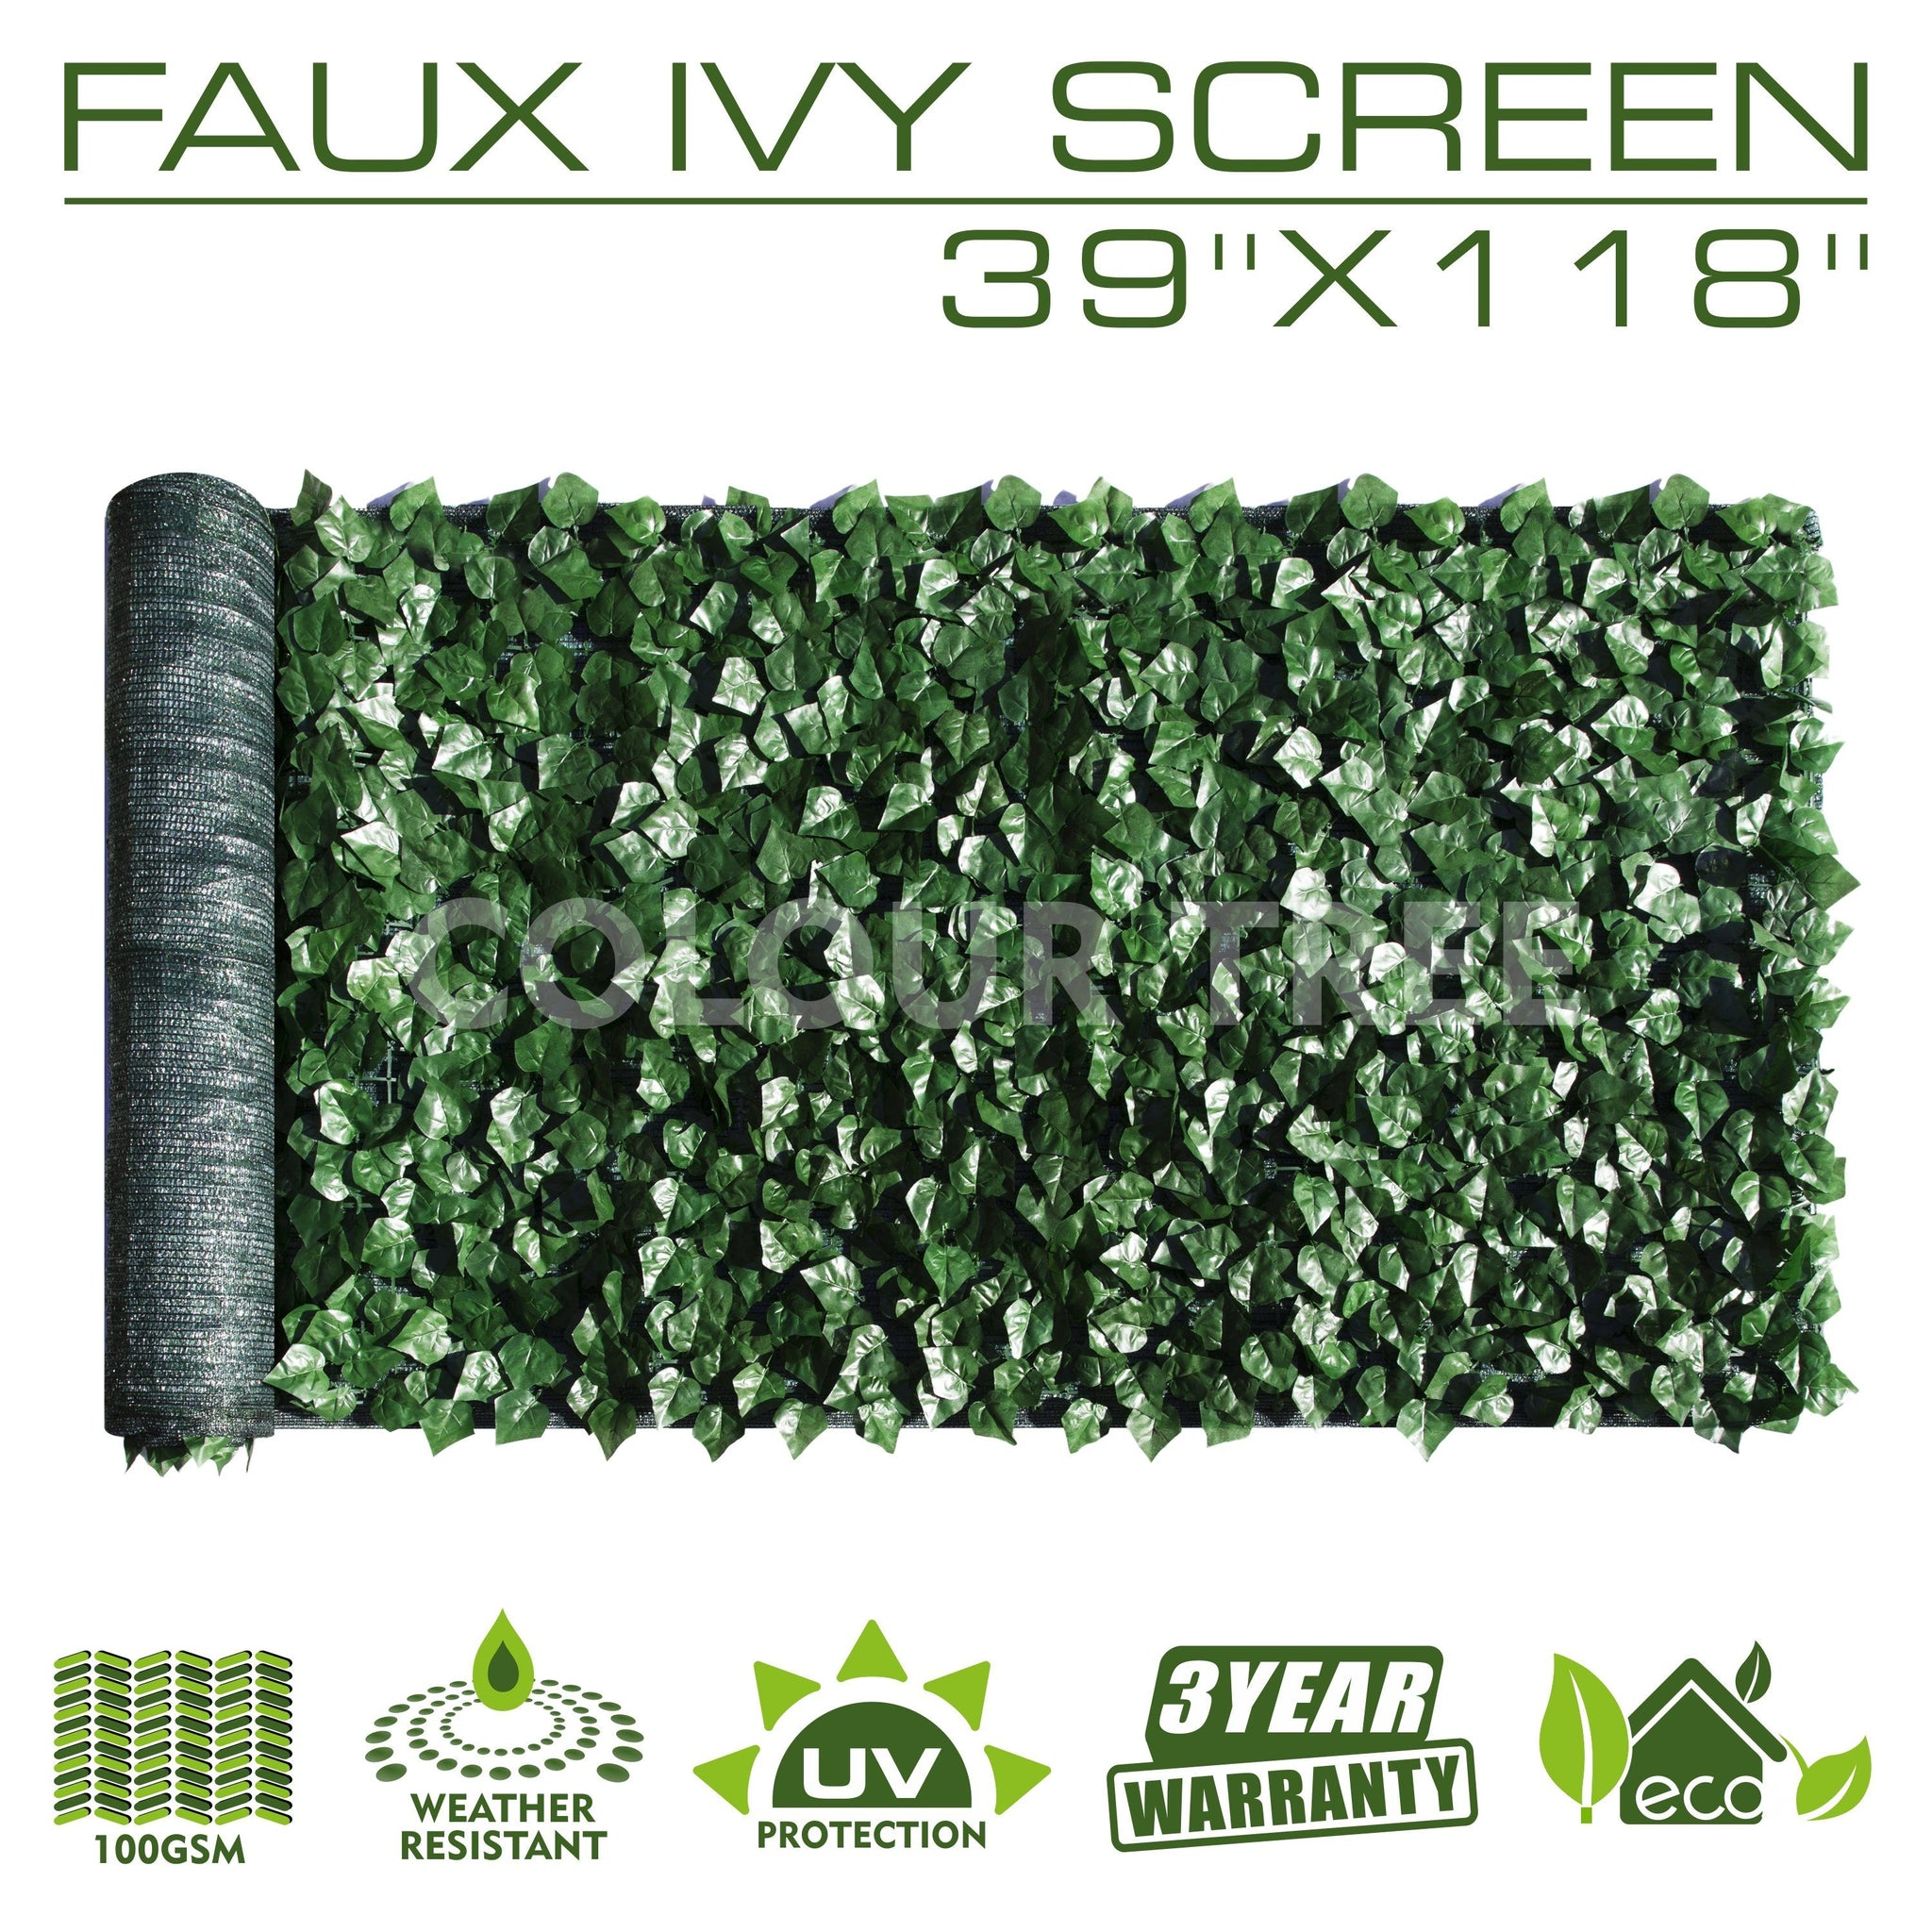 "Artificial Hedges Faux Ivy Leaves Fence Privacy Screen Panels  Decorative Trellis - 39"" x 118"" - Colourtree inc"